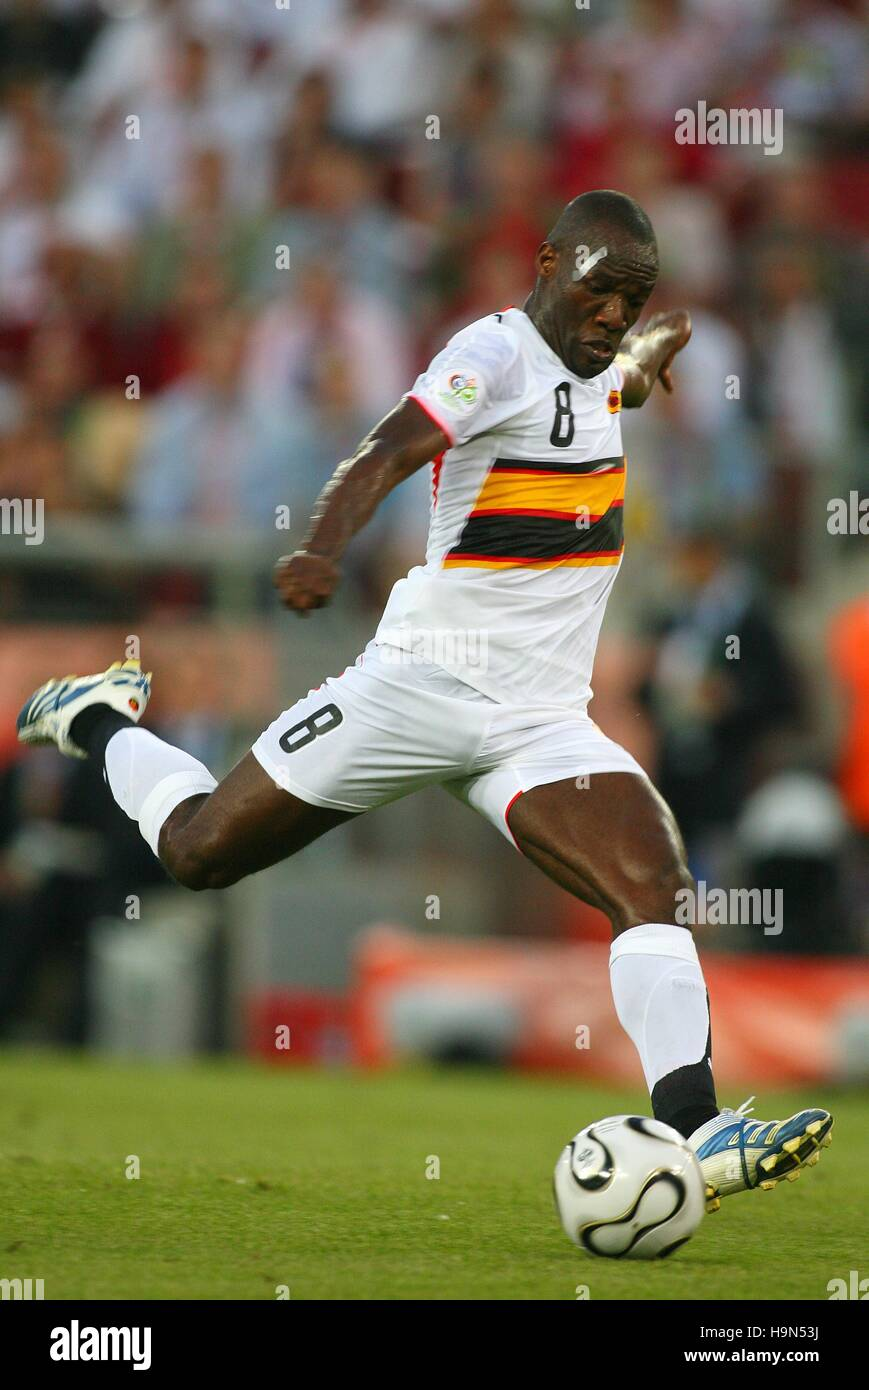 ANDRE ANGOLA & KUWAIT SC WORLD CUP COLOGNE GERMANY 11 June 2006 - Stock Image